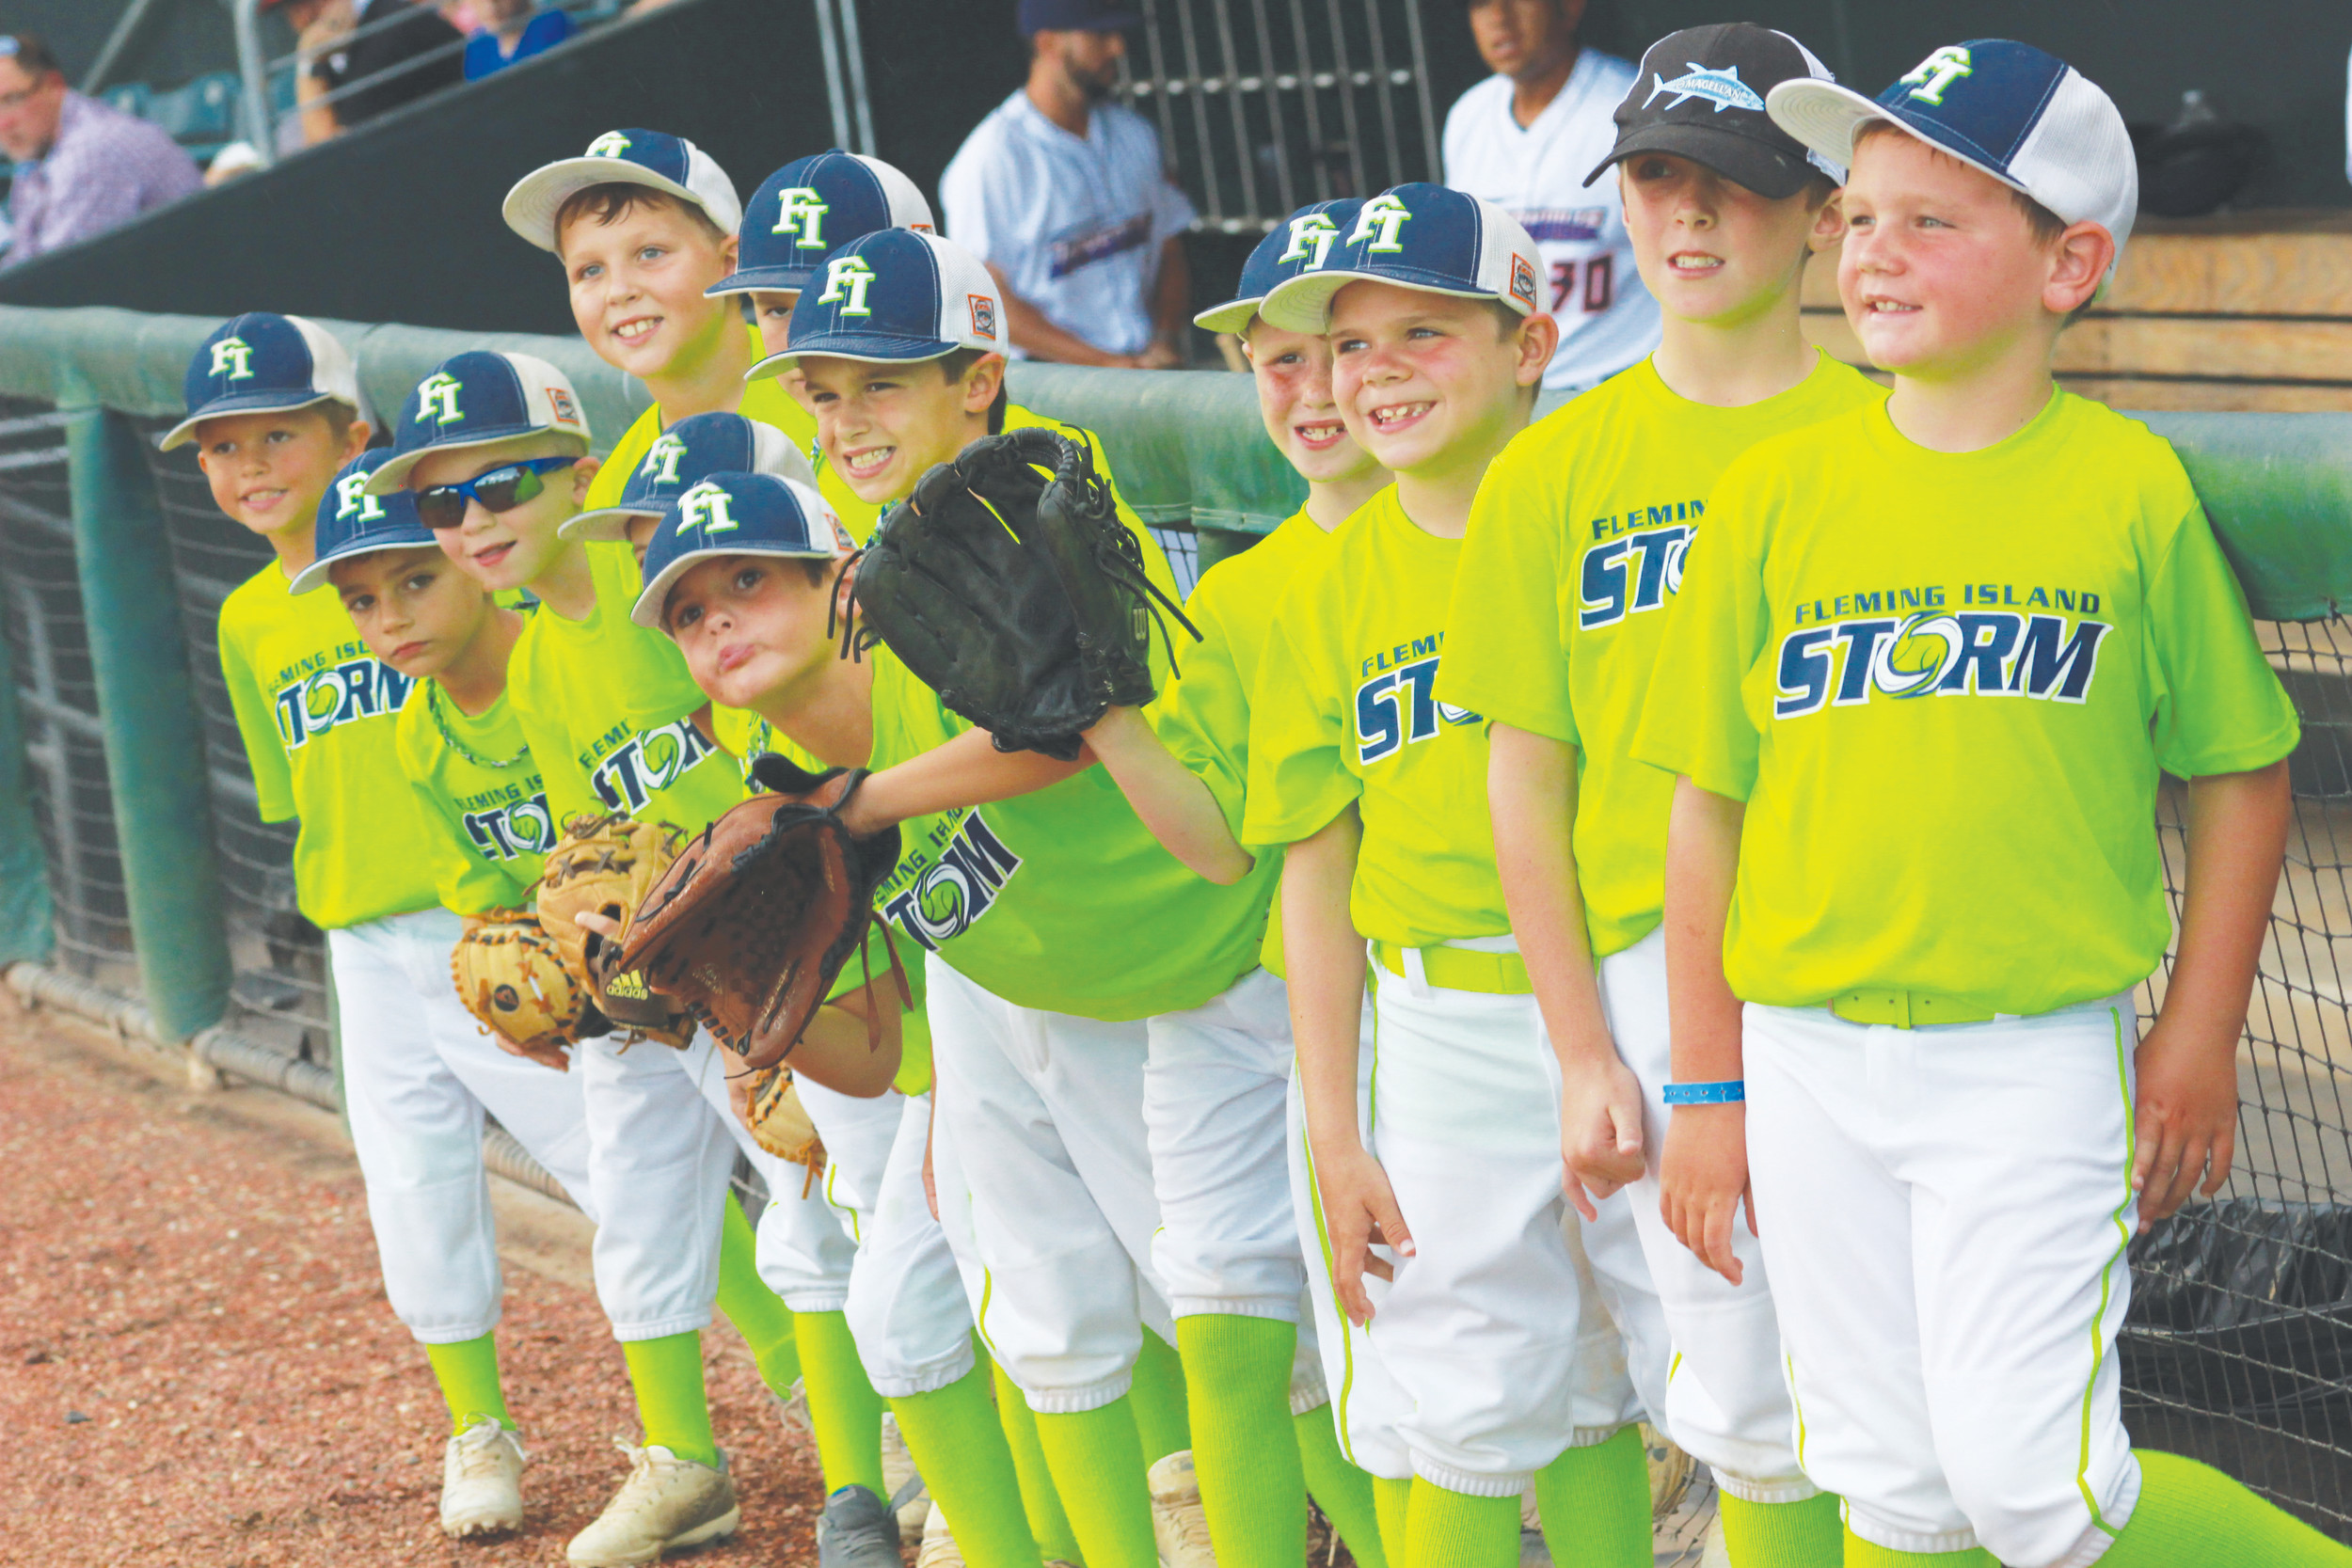 The Fleming Island Little League Storm baseball team got an invite to run with the Jacksonville Jumbo Shrimp minor league baseball team on Wed., July 17 at the Jacksonville Baseball Grounds. The Storm team members were Matthew Adams, Caleb Ainsworth, Grady Tees, Bradley Herringdine, Connor Massey, Lee HIte, Jacob Bowden, Greyson Critch, Cooper Blackwood, Ryland Matuschke, Jordan Adams and Carson Connolly.